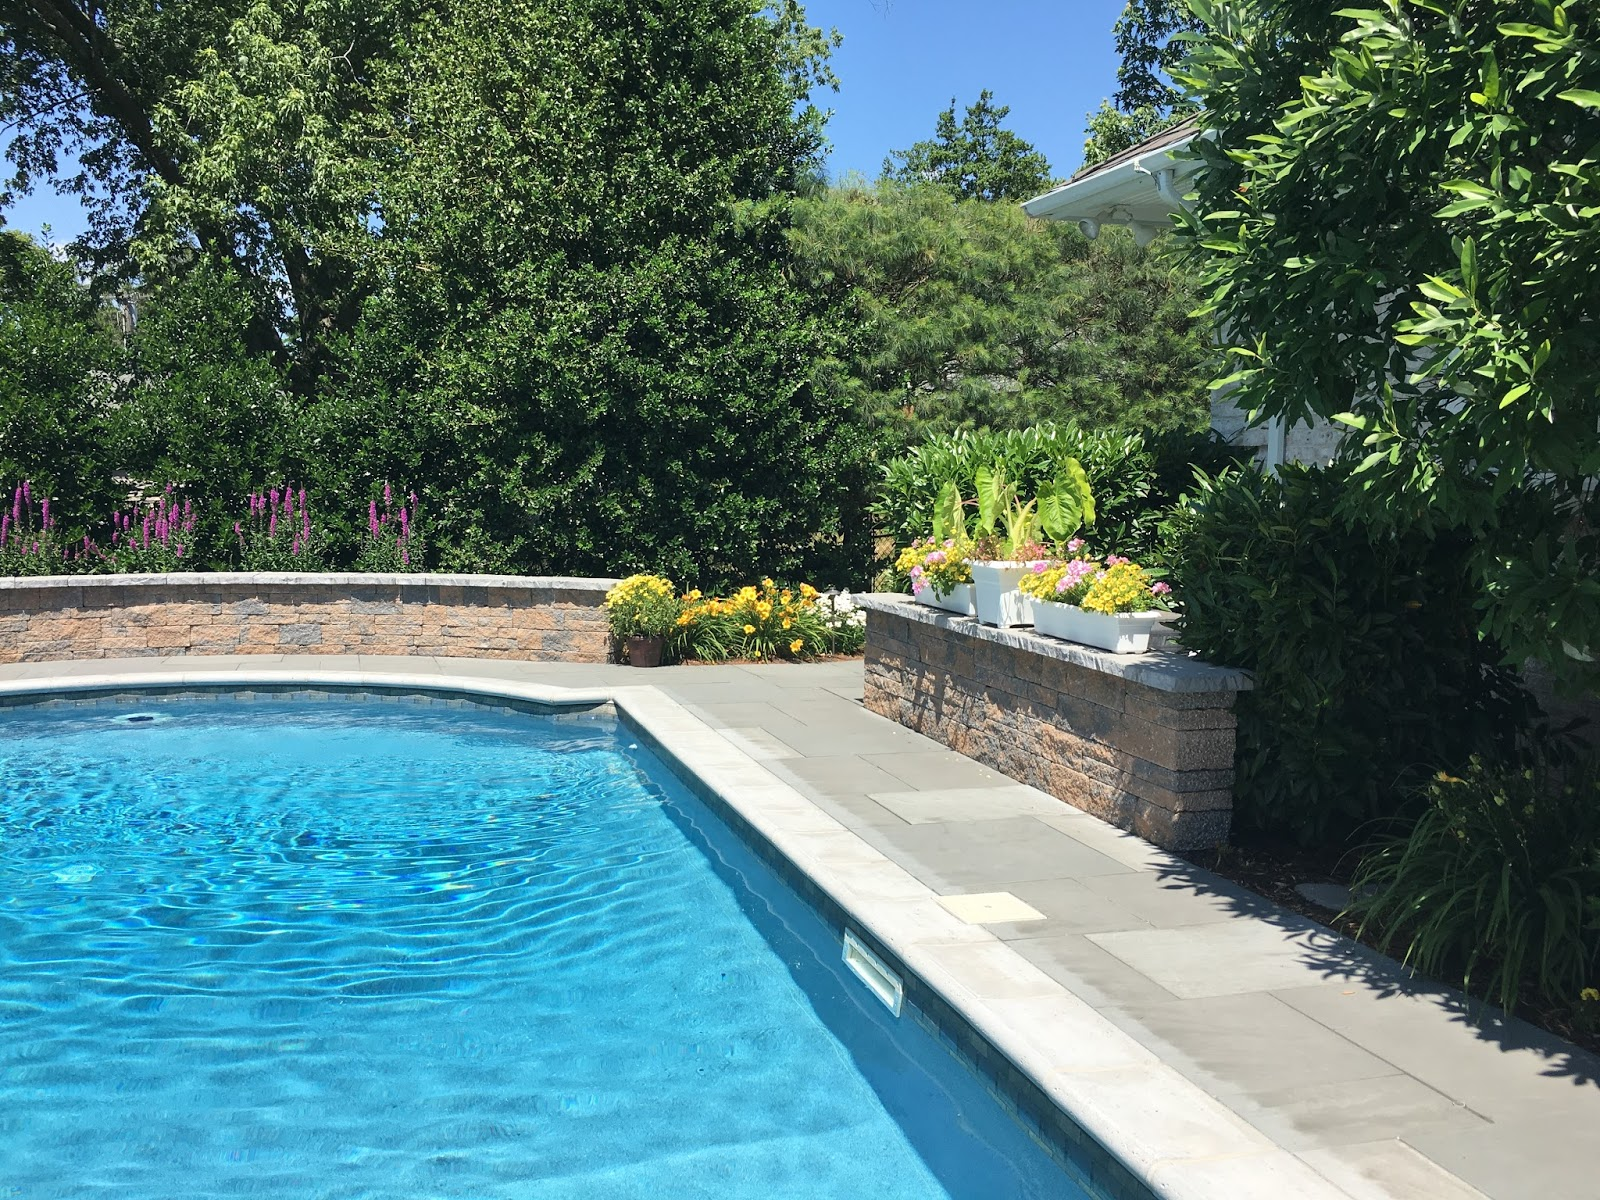 Classic swimming pool with pavers